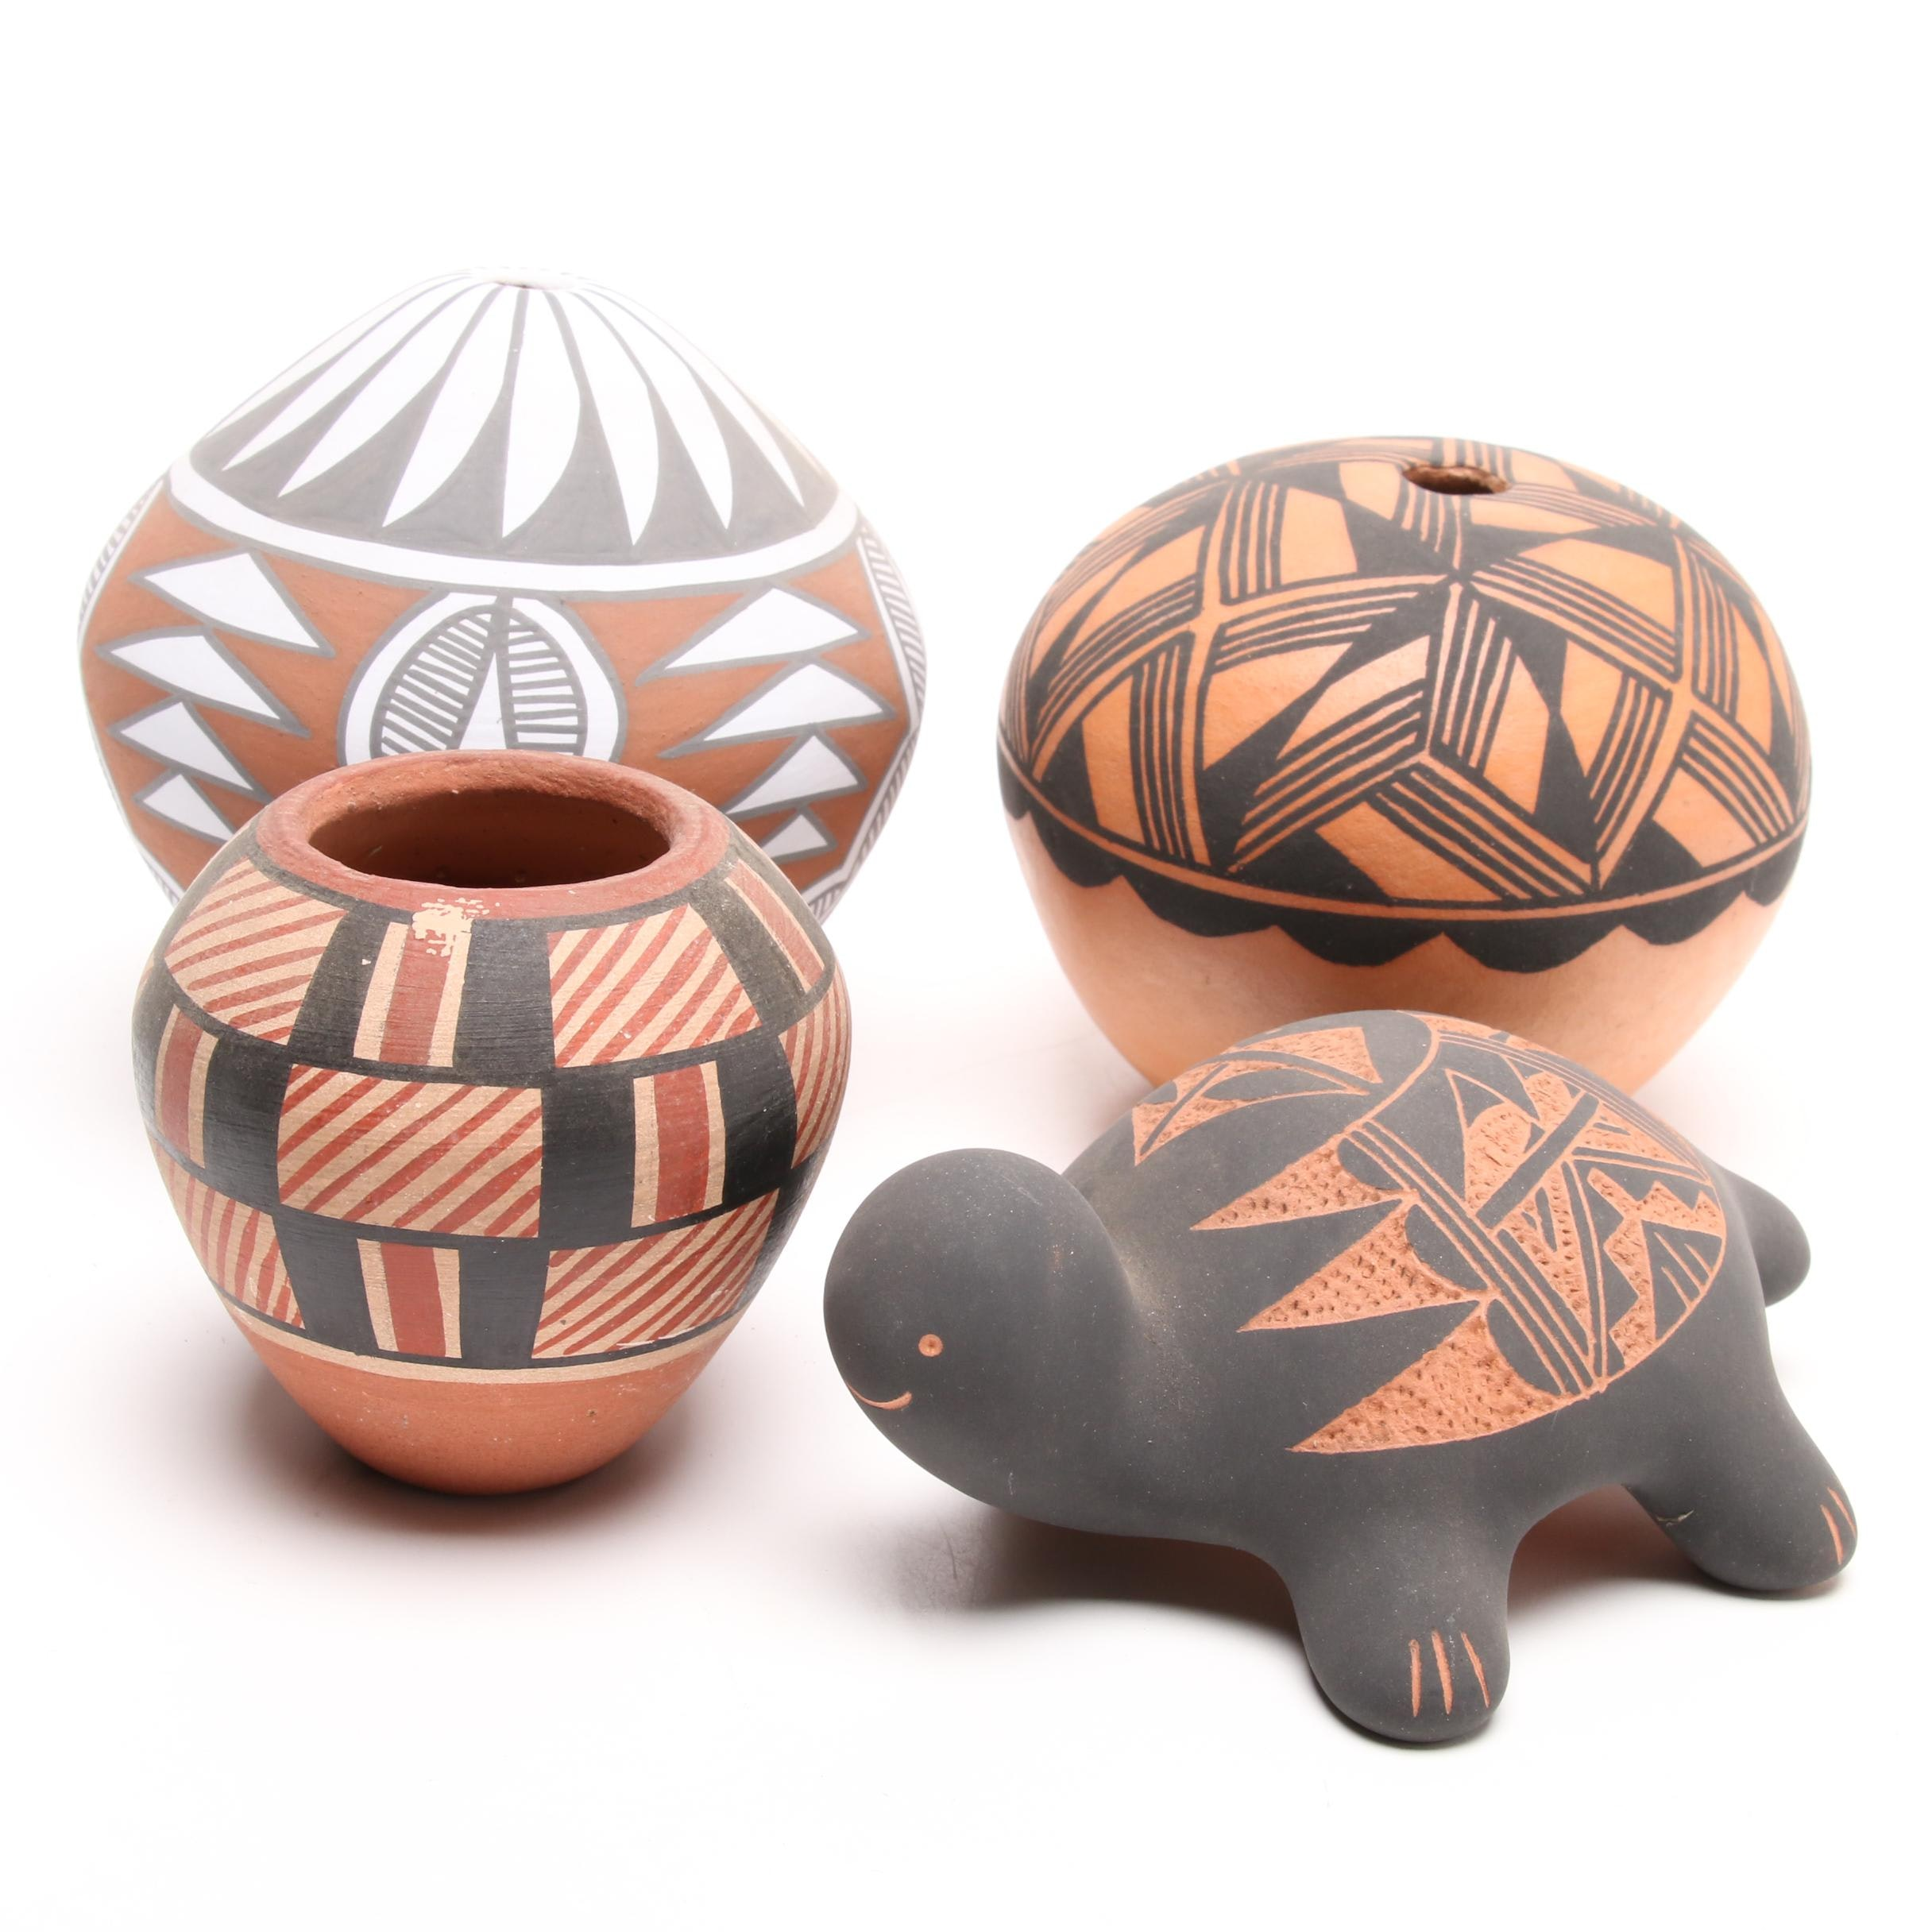 Native American Sgraffito and Polychrome Art Pottery